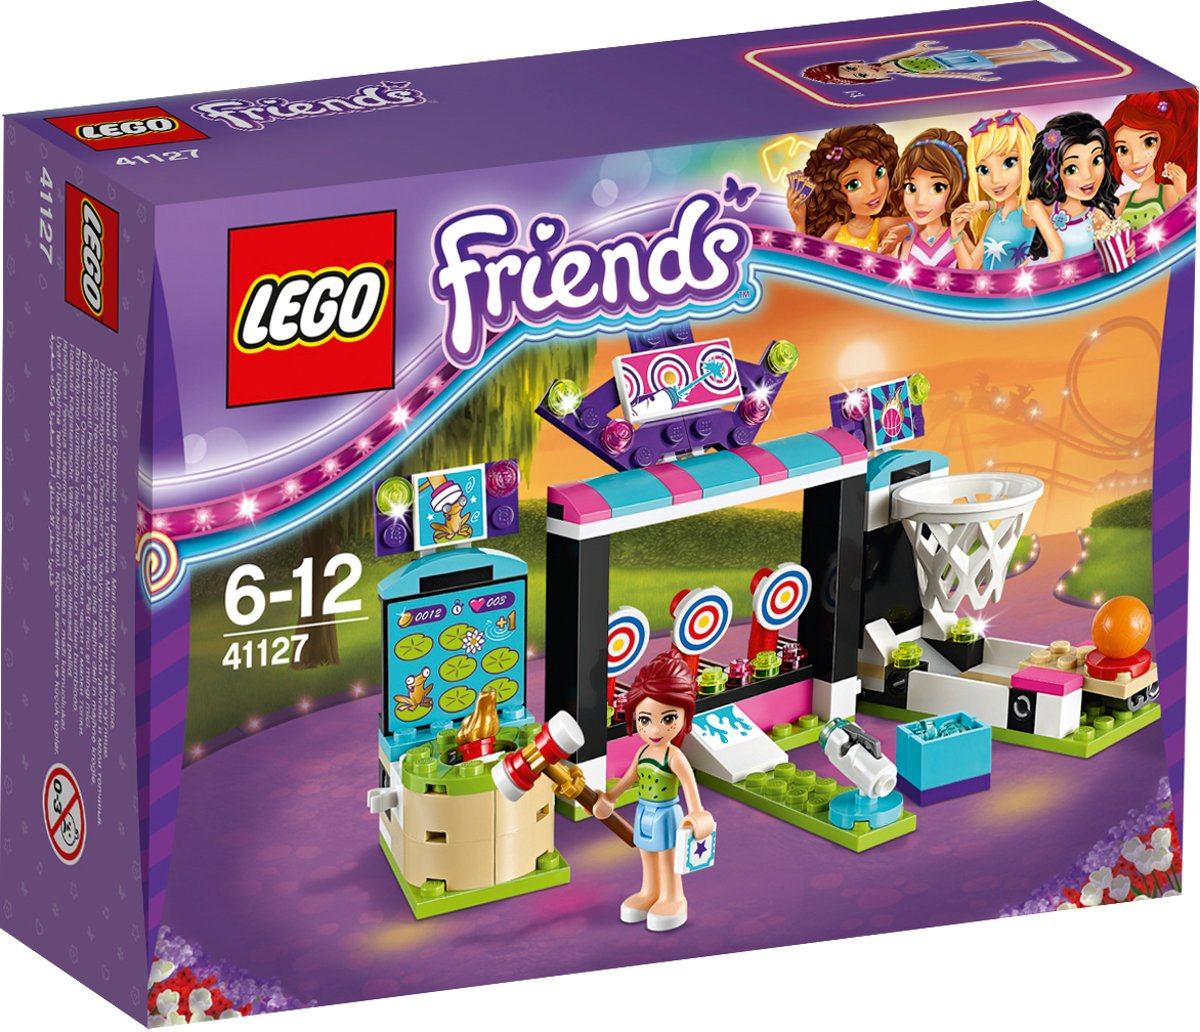 LEGO Friends Pretpark Spelletjeshal - 41127